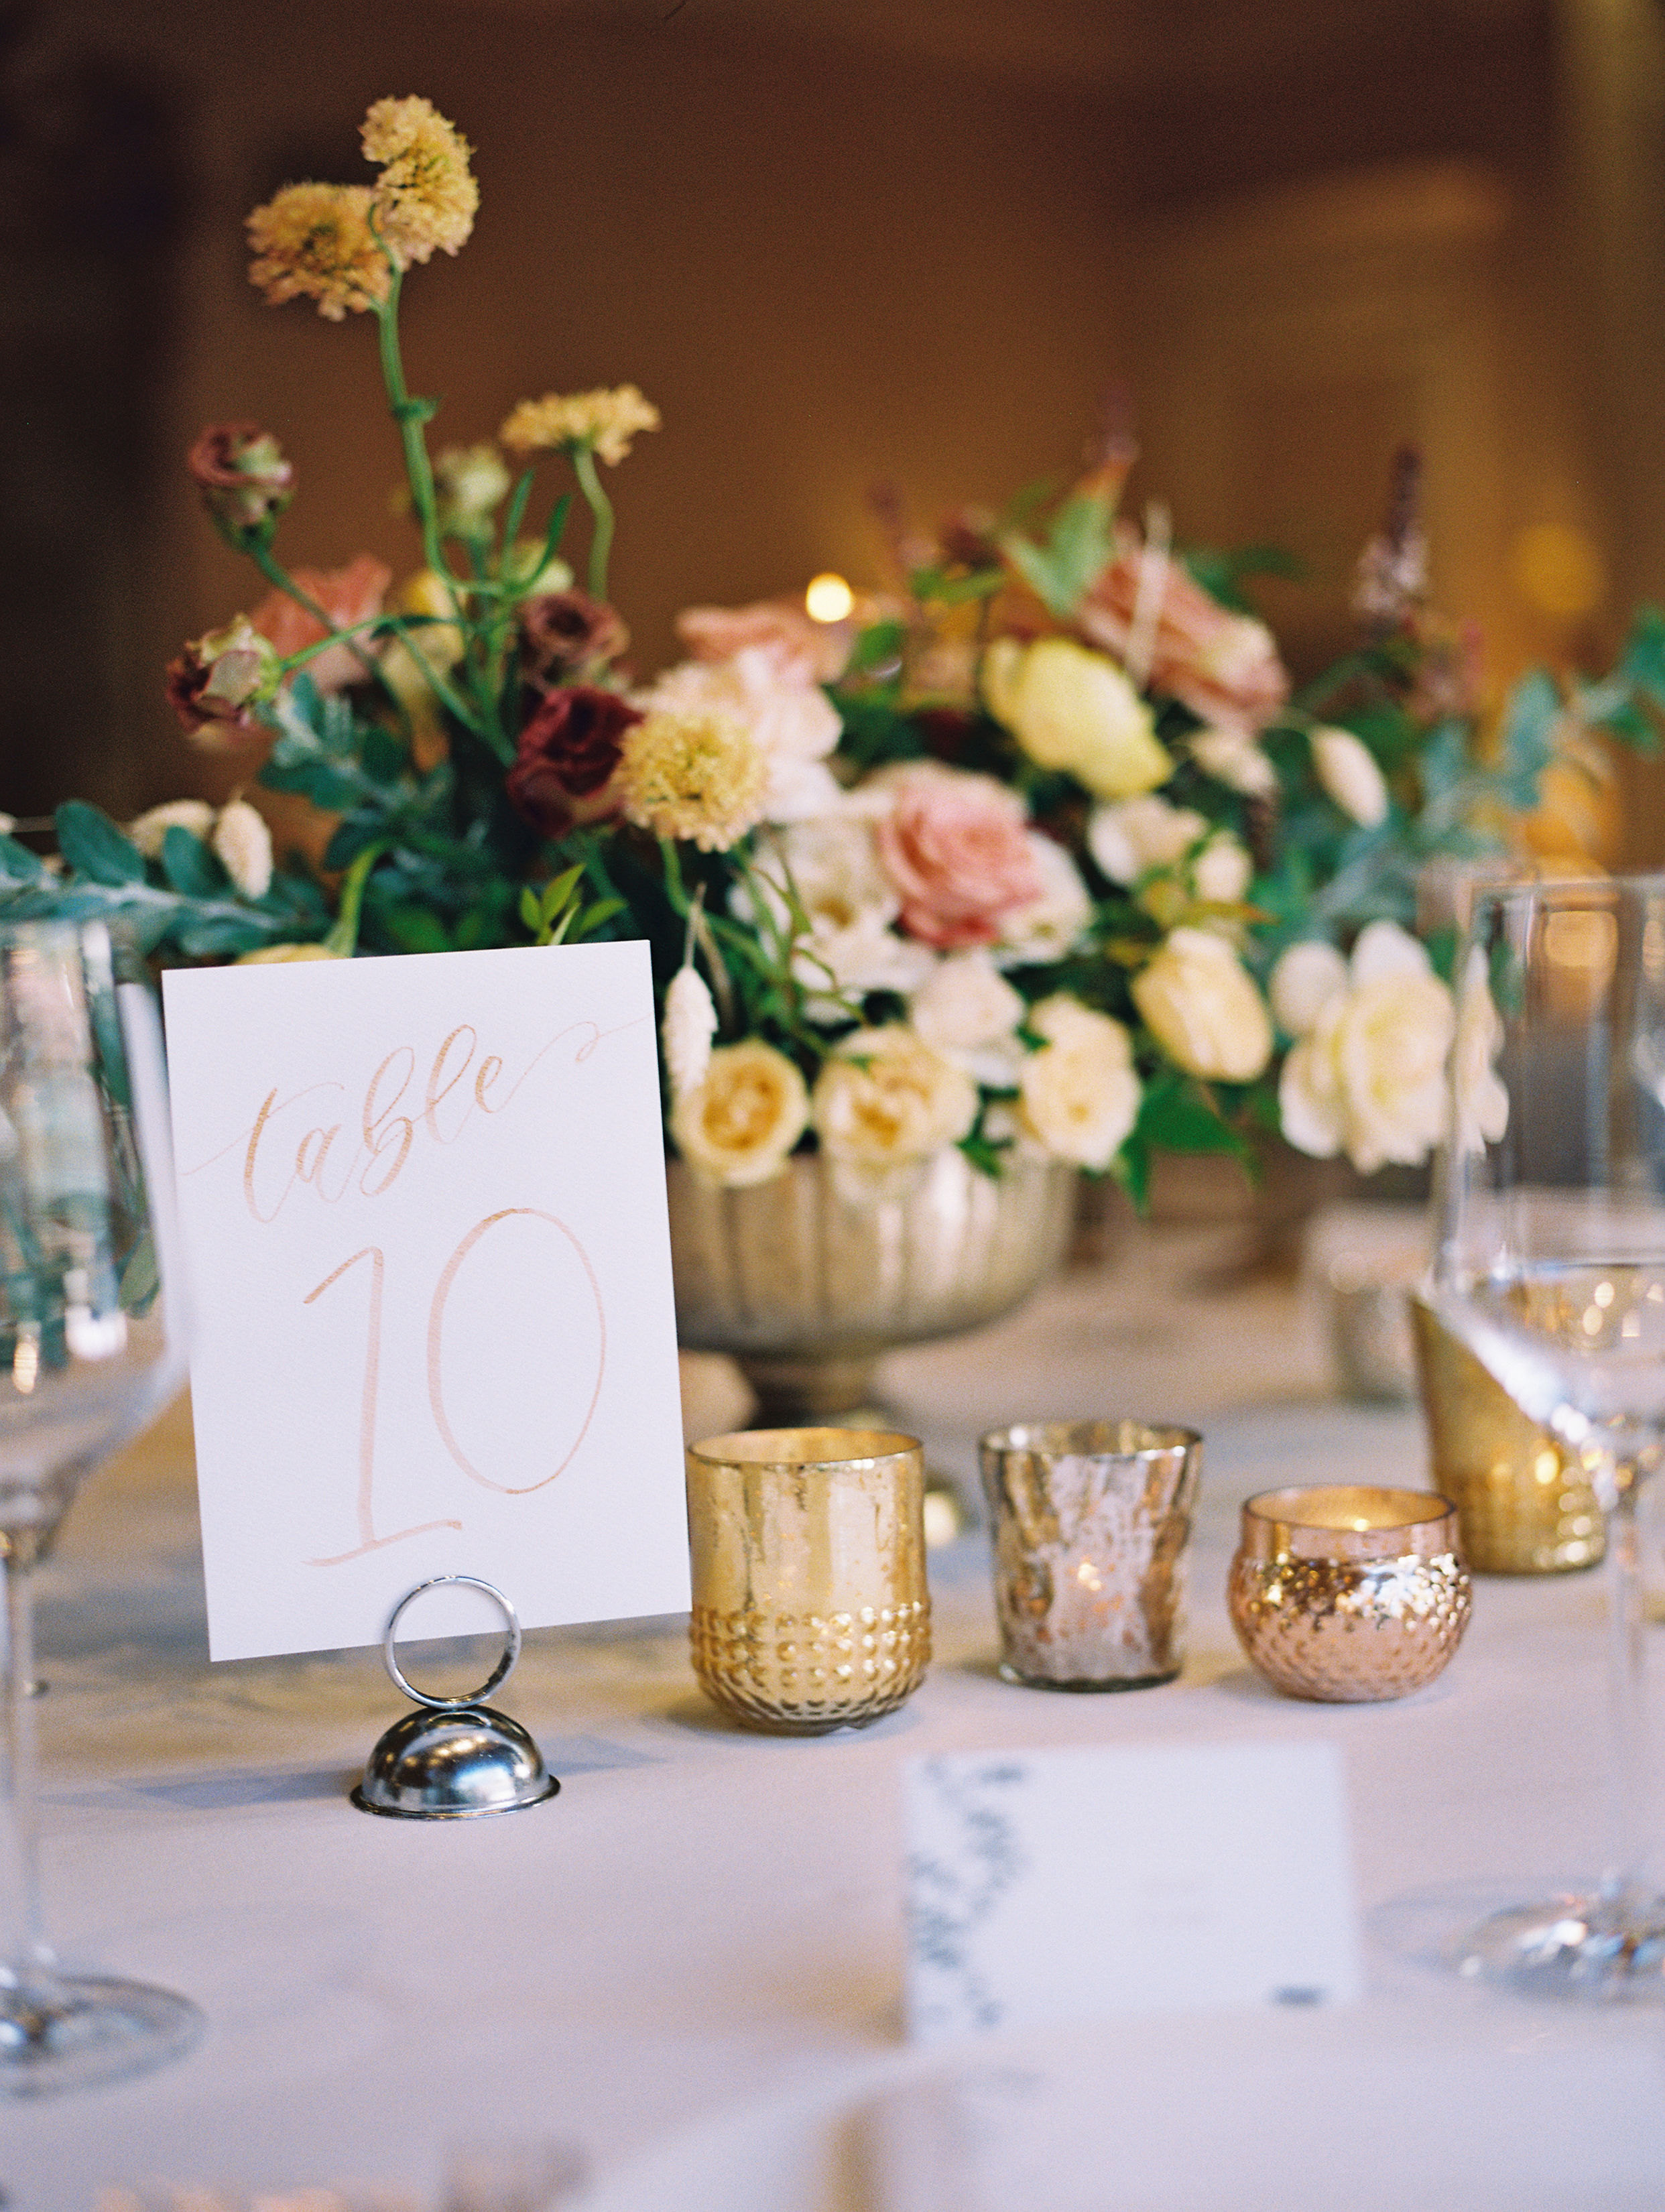 Gold Watercolor Table Numbers, Handpainted by Sam Allen Creates, YourNewFriendSam on Etsy – This Modern Romance Photography